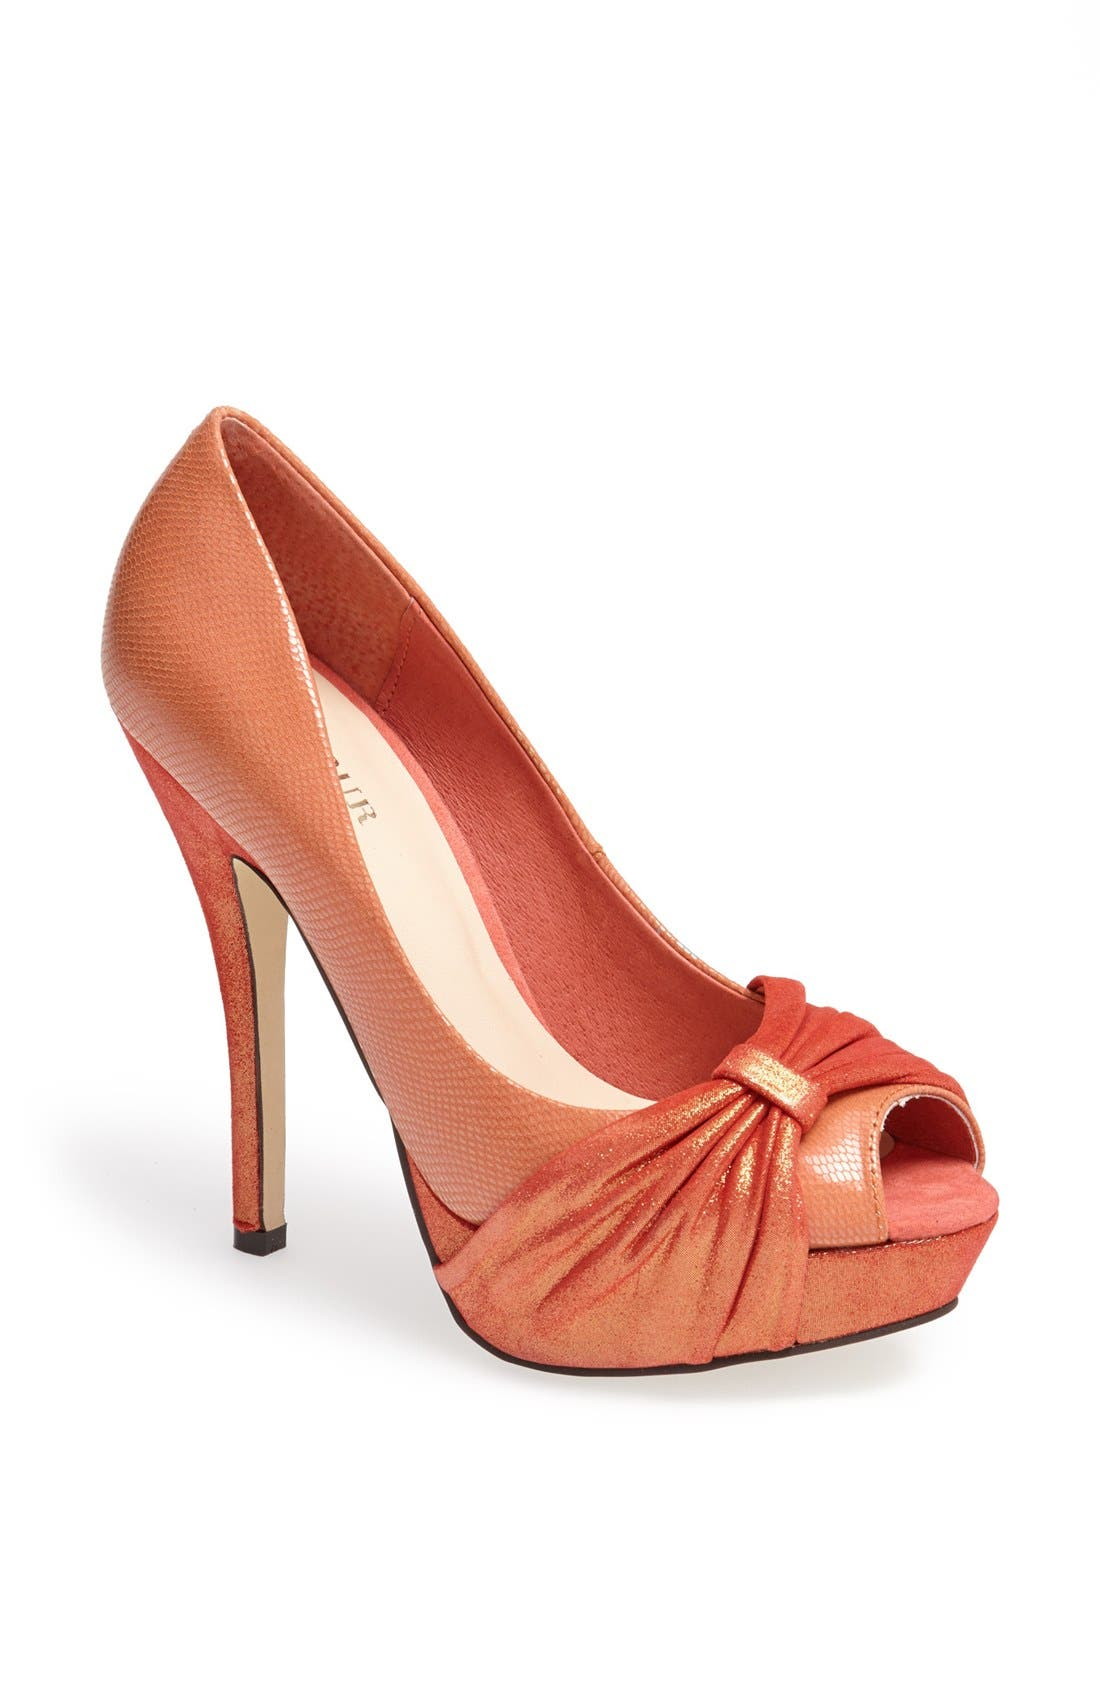 Alternate Image 1 Selected - Menbur Peep Toe Pump